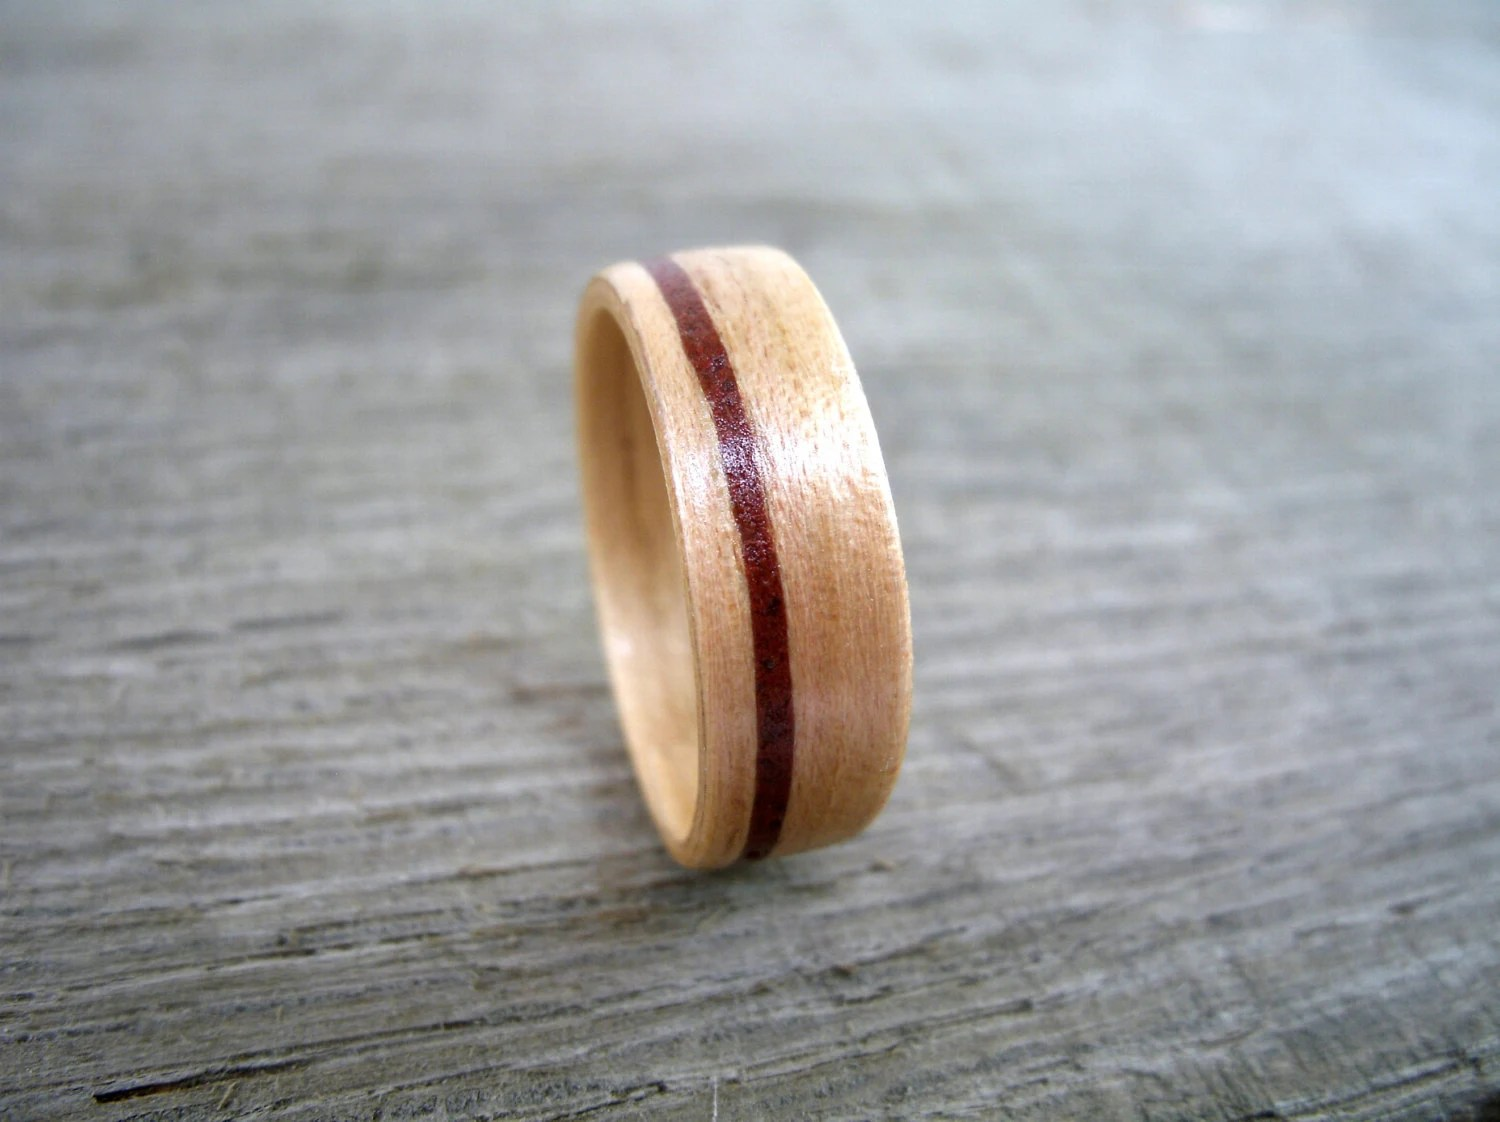 firefighter ring mens firefighter wedding bands Wooden Ring Firefighter Wedding Brick inlaid Hickory Wood Inlay Wedding Ring Engagement Ring